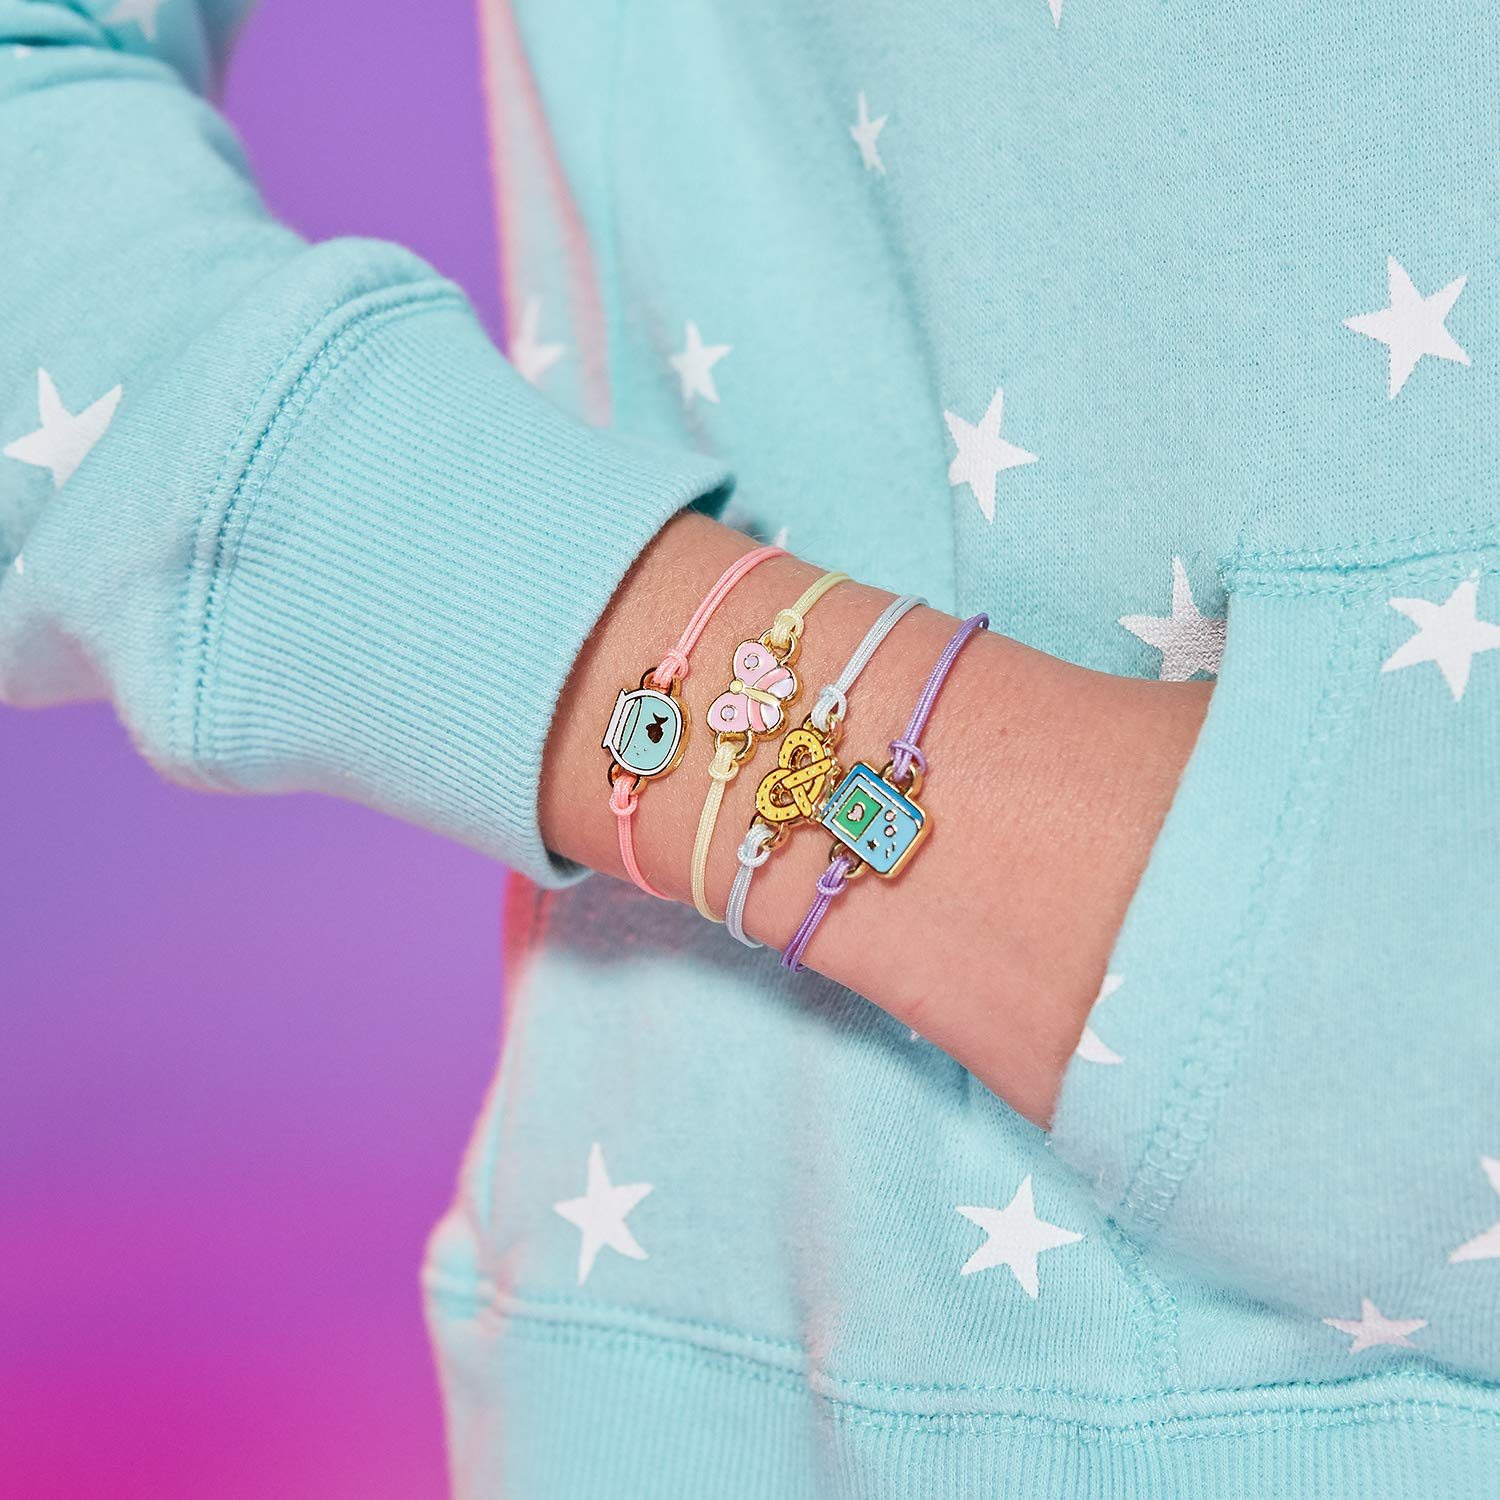 WowWee Lucky Fortune Blind Collectible Bracelets - 4 Pack Take-Out Box - Series 1 by WowWee (Image #4)